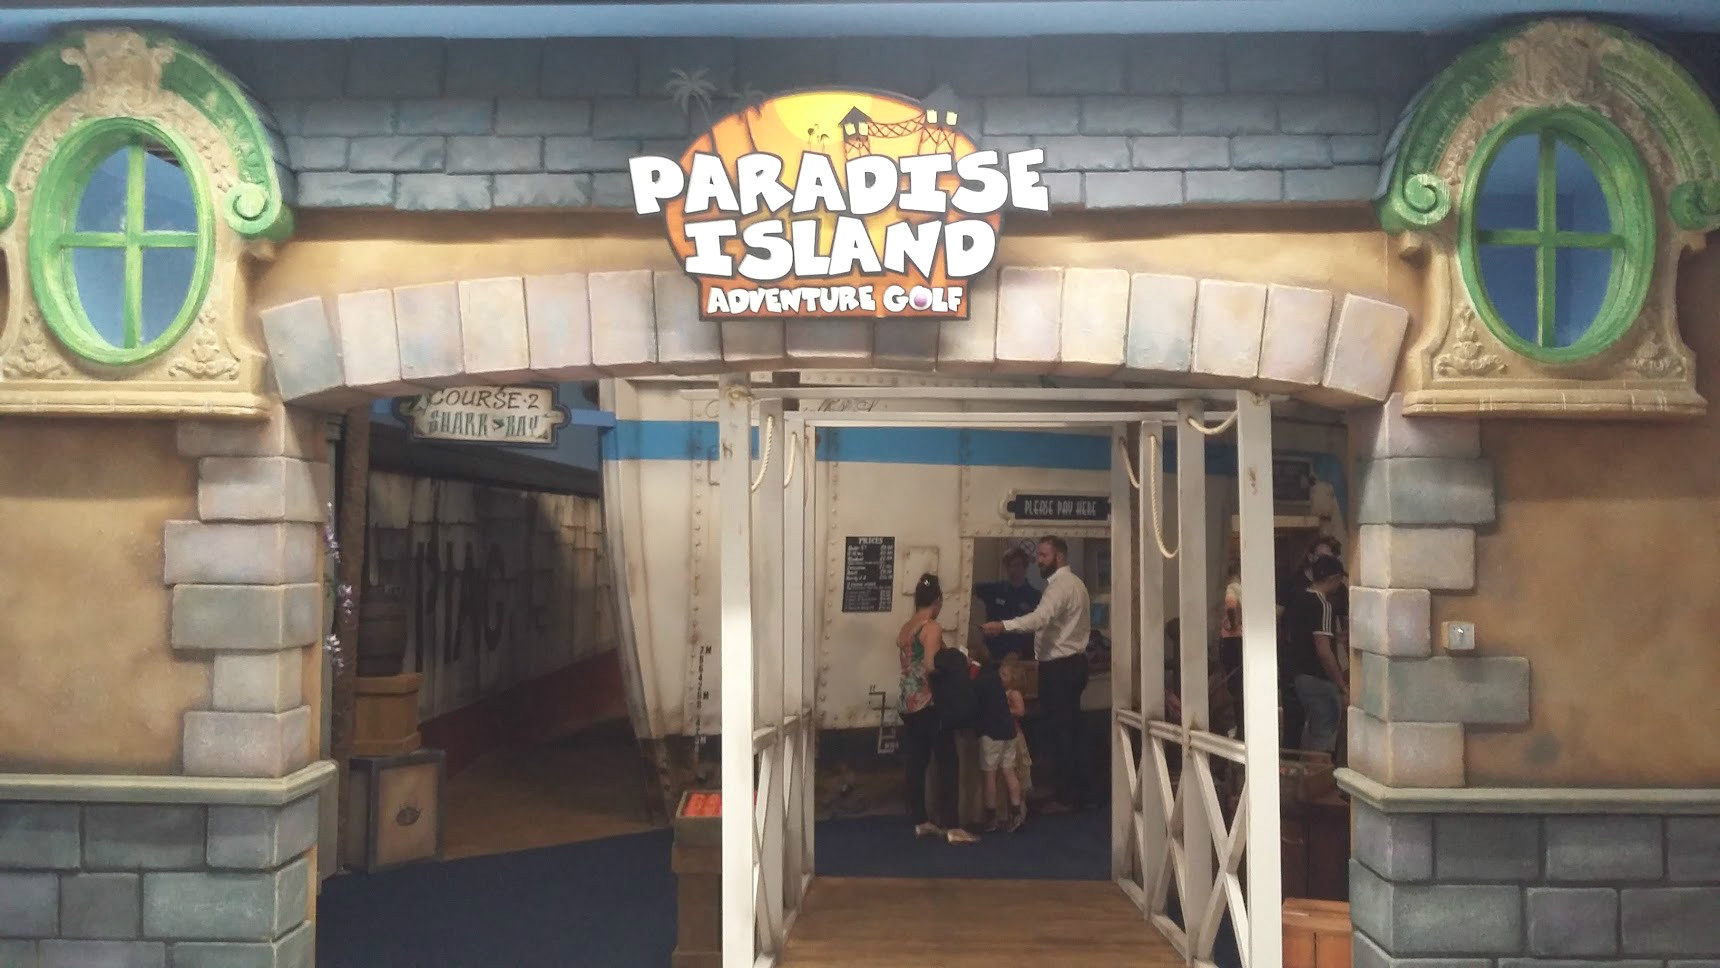 Our Trip to Paradise Island Adventure Golf at the Intu Centre Derby review